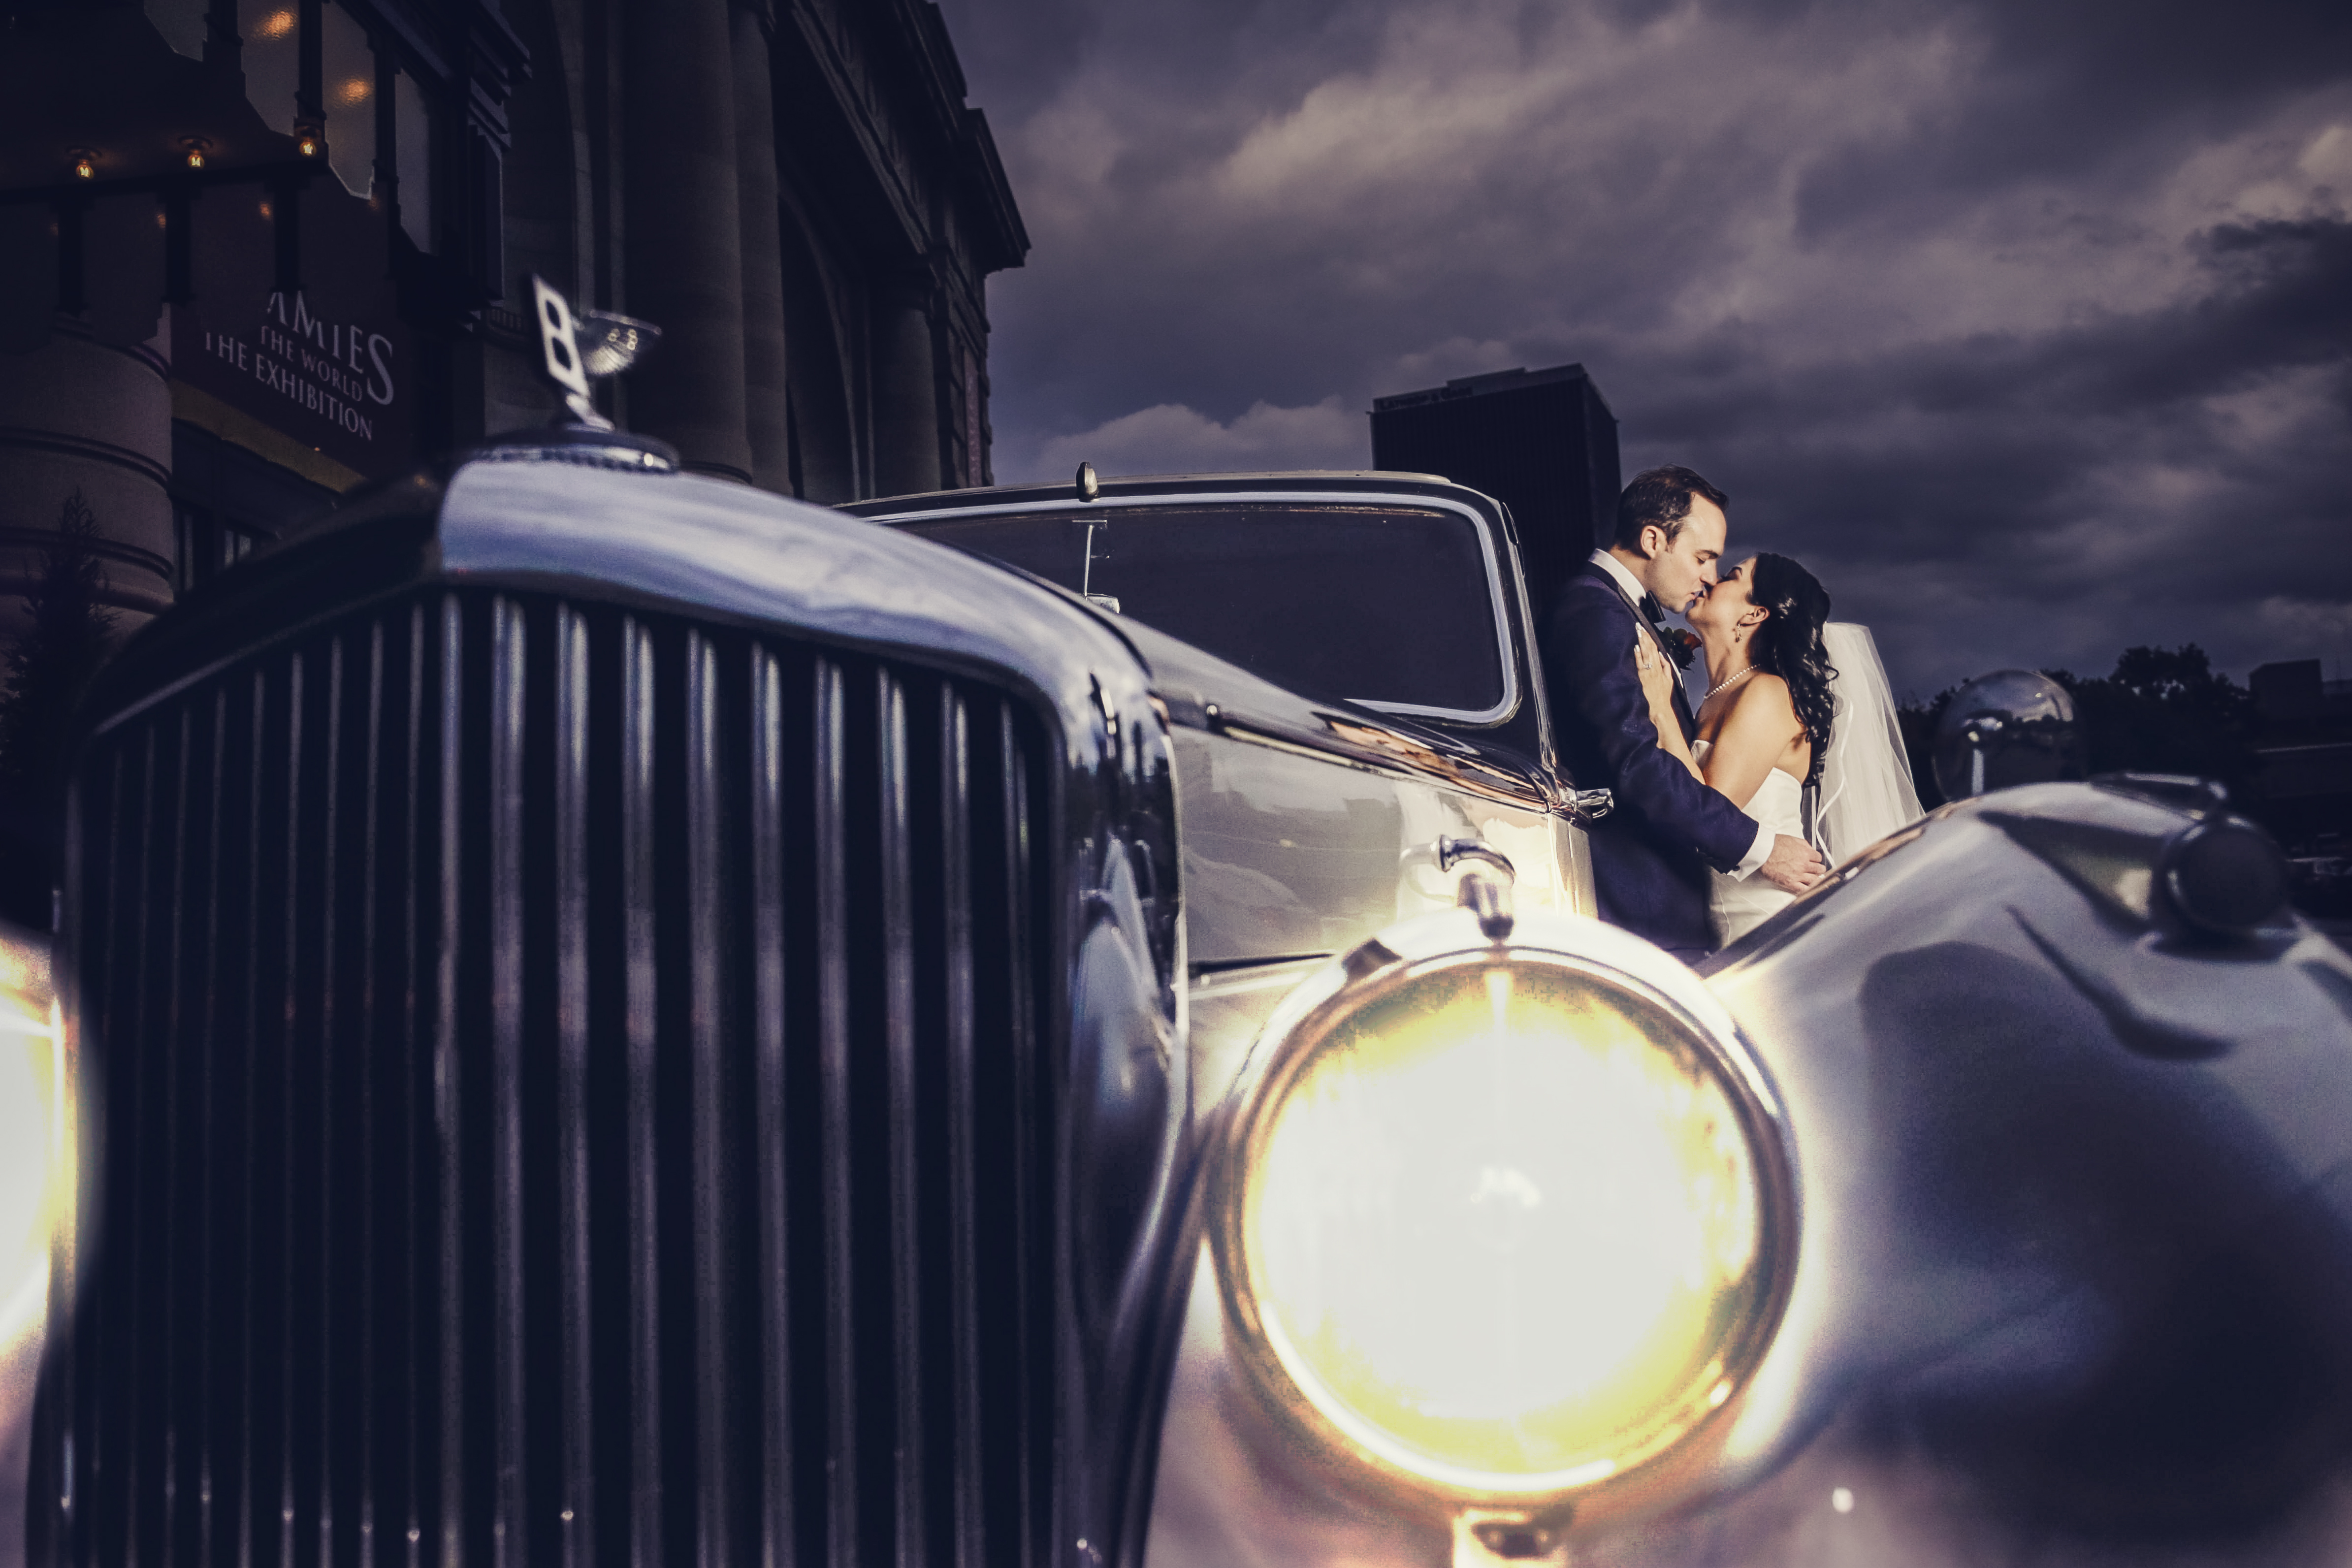 Gatsby Inspired Wedding Sneak Peek | A dramatic photo of a bride and groom sharing a kiss as they lean against a classic car in front of Kansas City's Union Station on their wedding day.